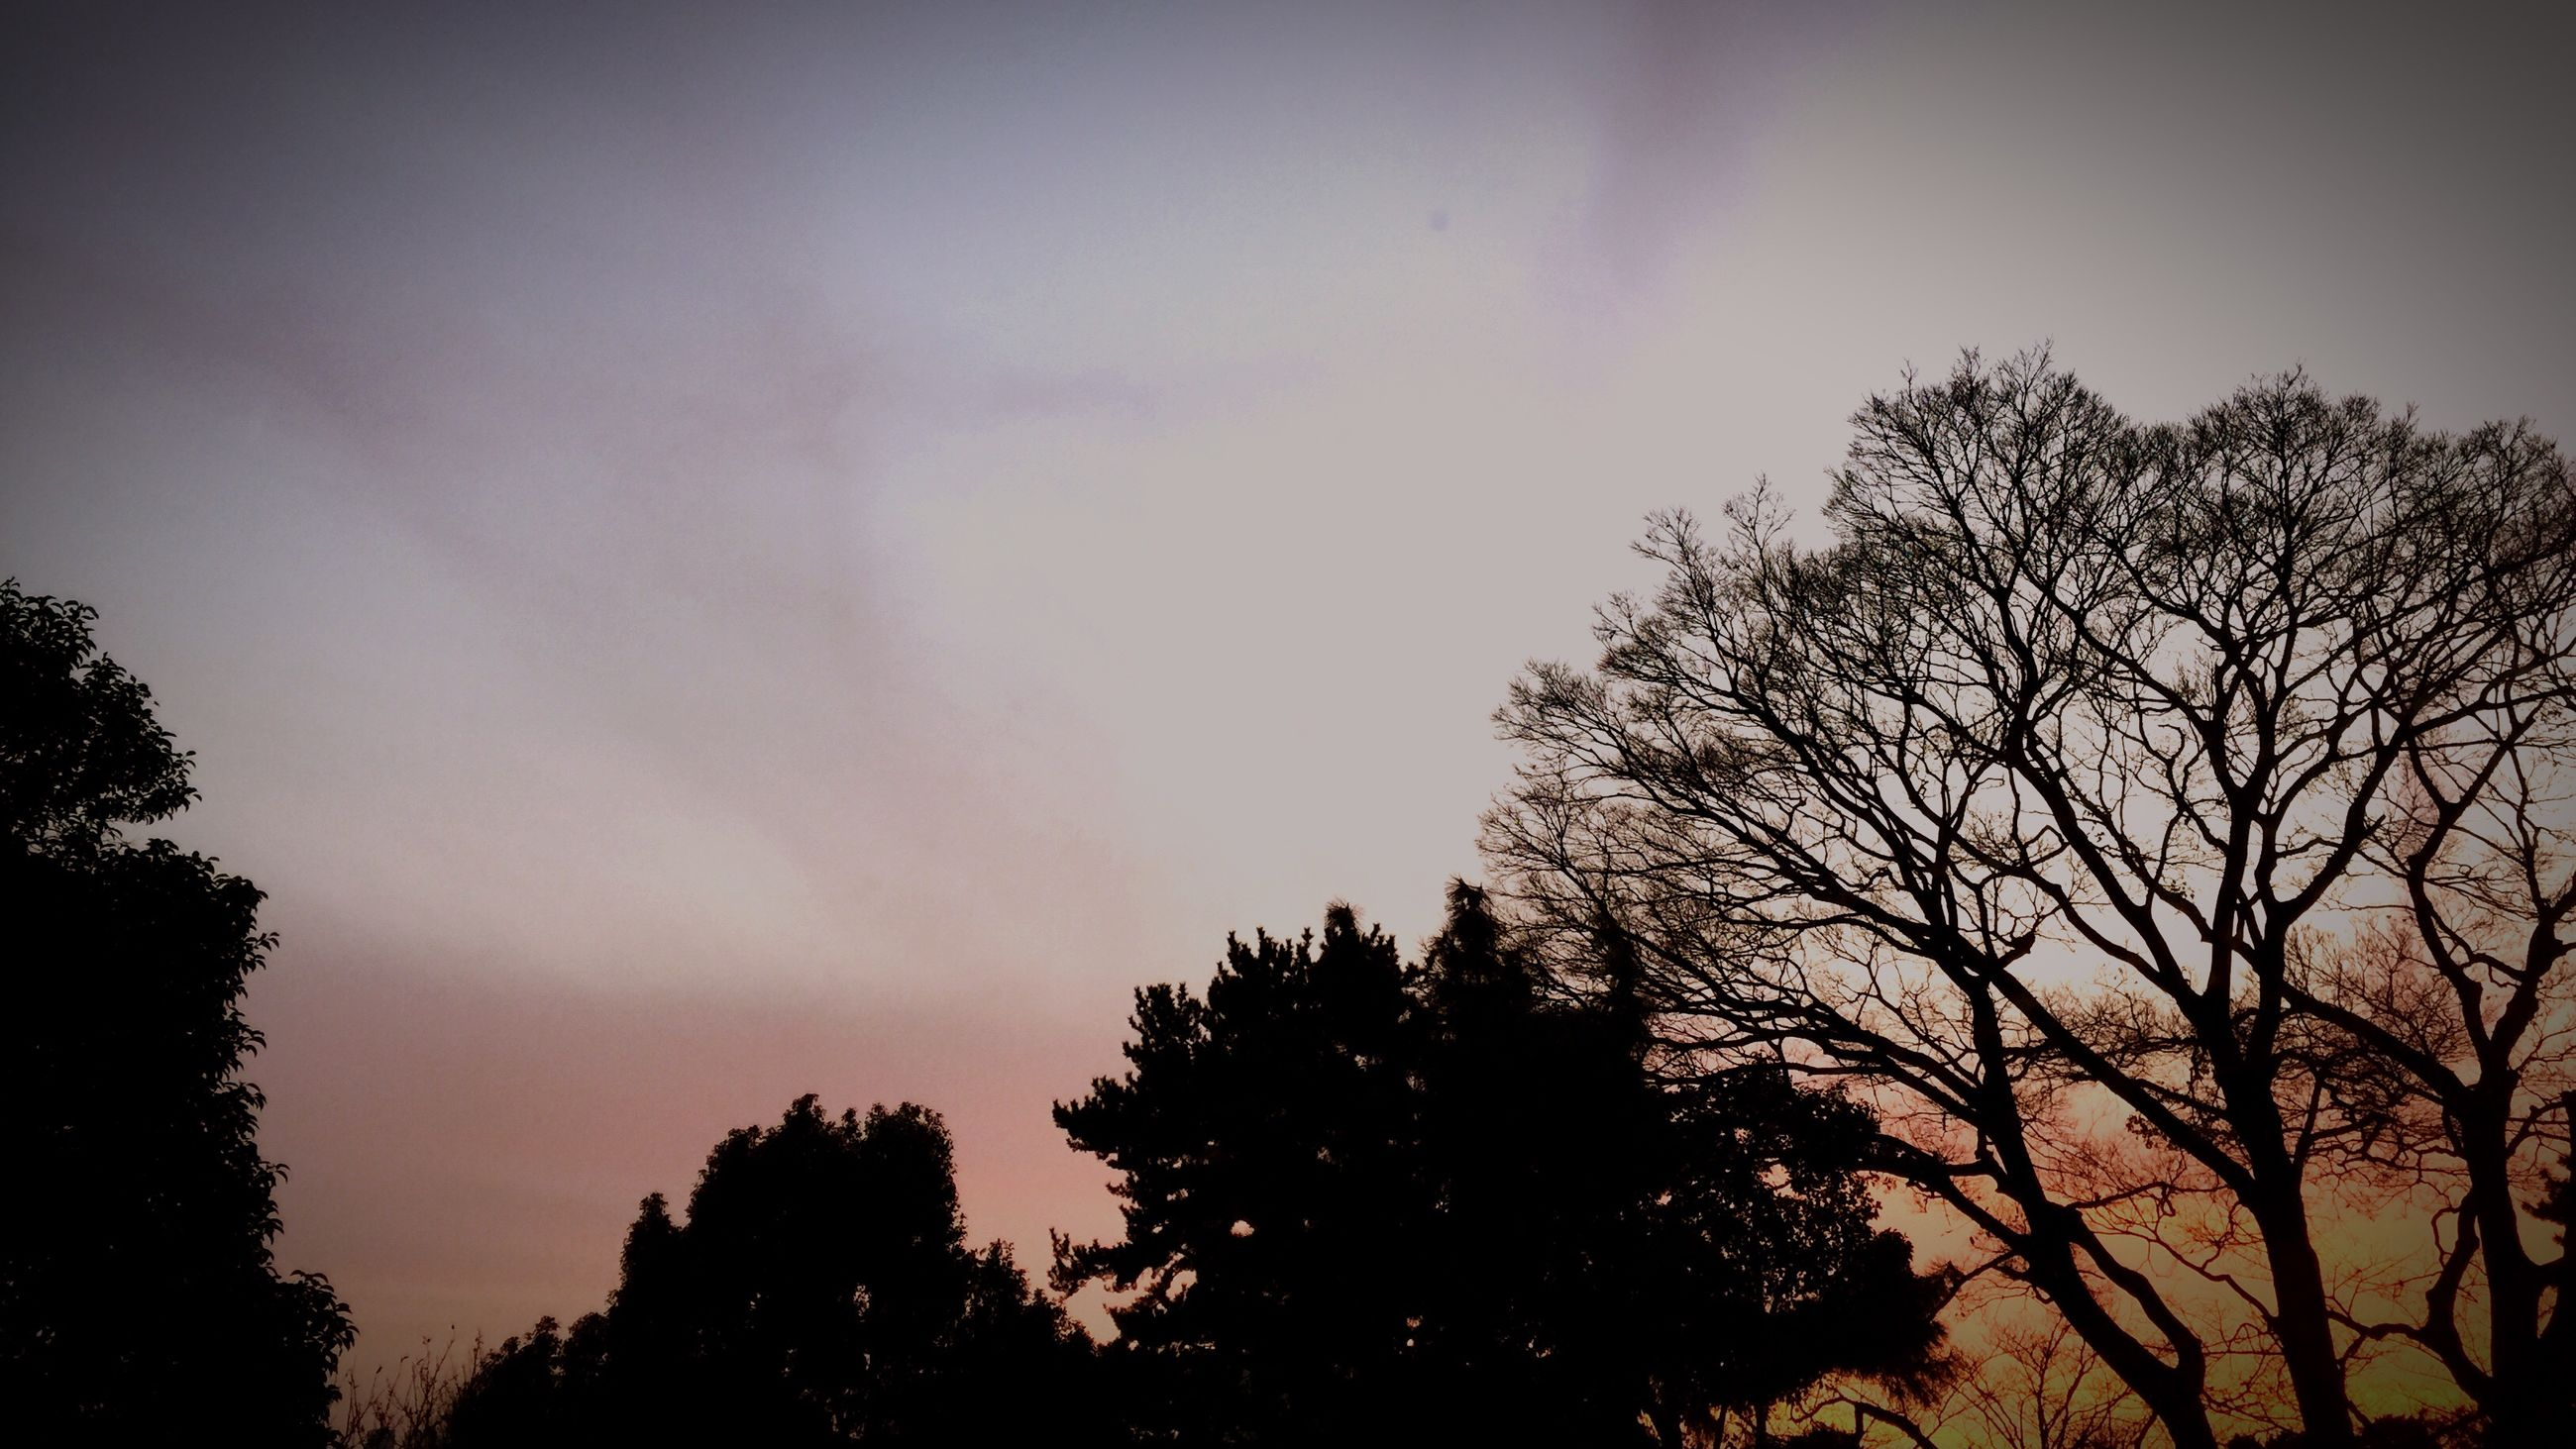 tree, sunset, silhouette, nature, sky, beauty in nature, no people, growth, outdoors, day